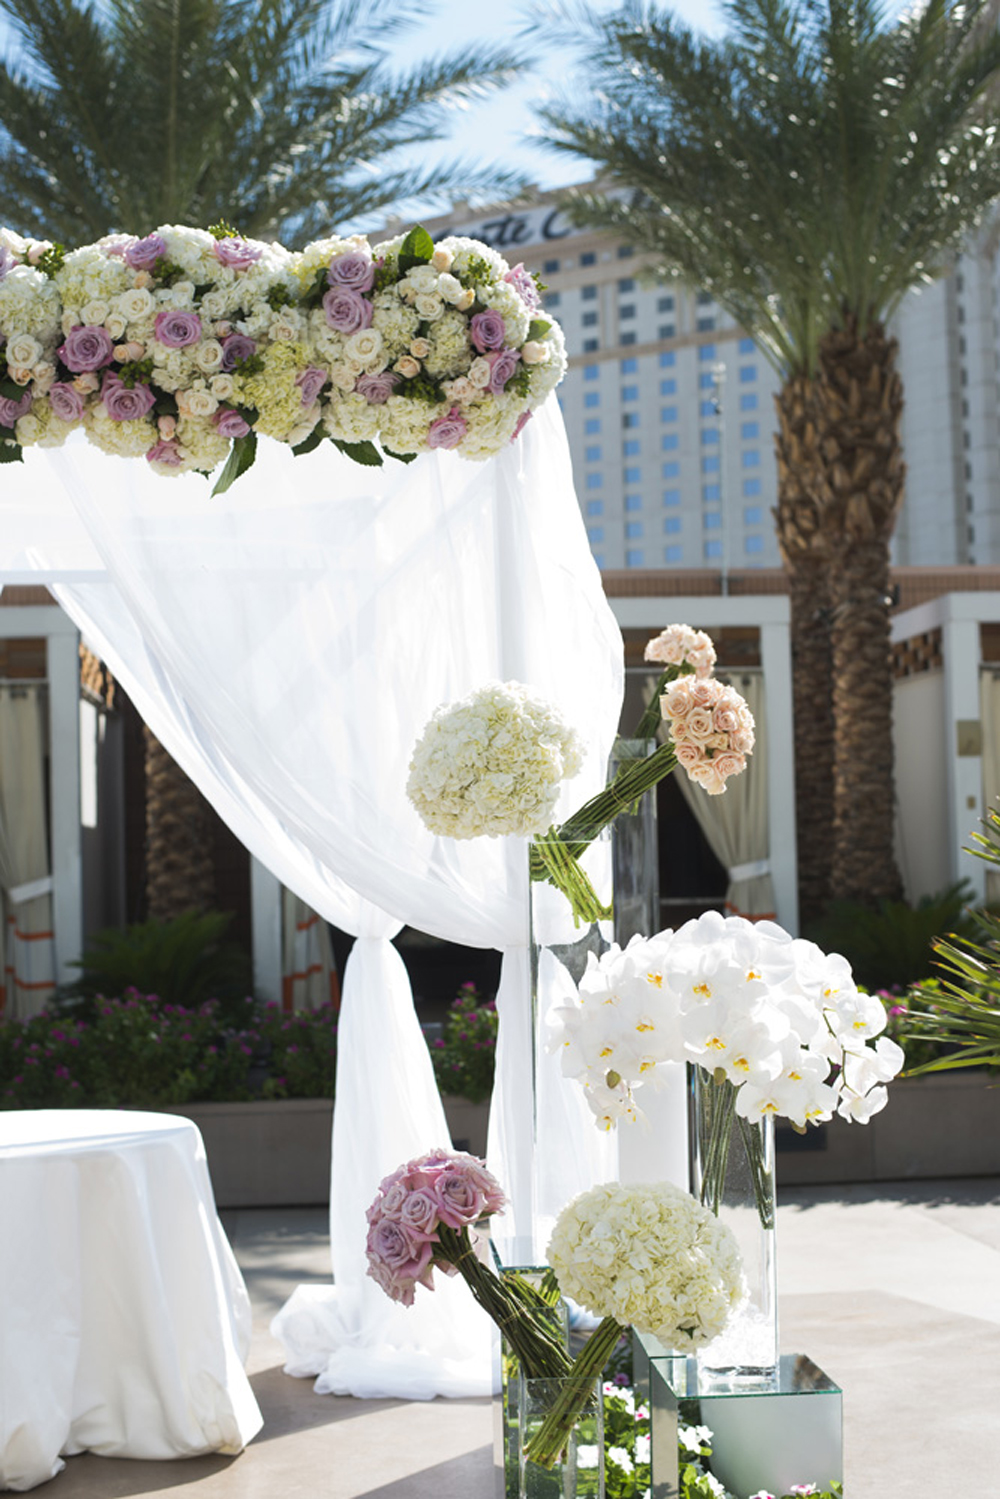 The white canopy and drape was off set by bursts of color and pastel florals.   Las Vegas Wedding at   Mandarin Oriental   |  Photo by  Altf Photography   |  Floral and Decor by  Naakiti Floral   |  Las Vegas Wedding Planner  Andrea Eppolito